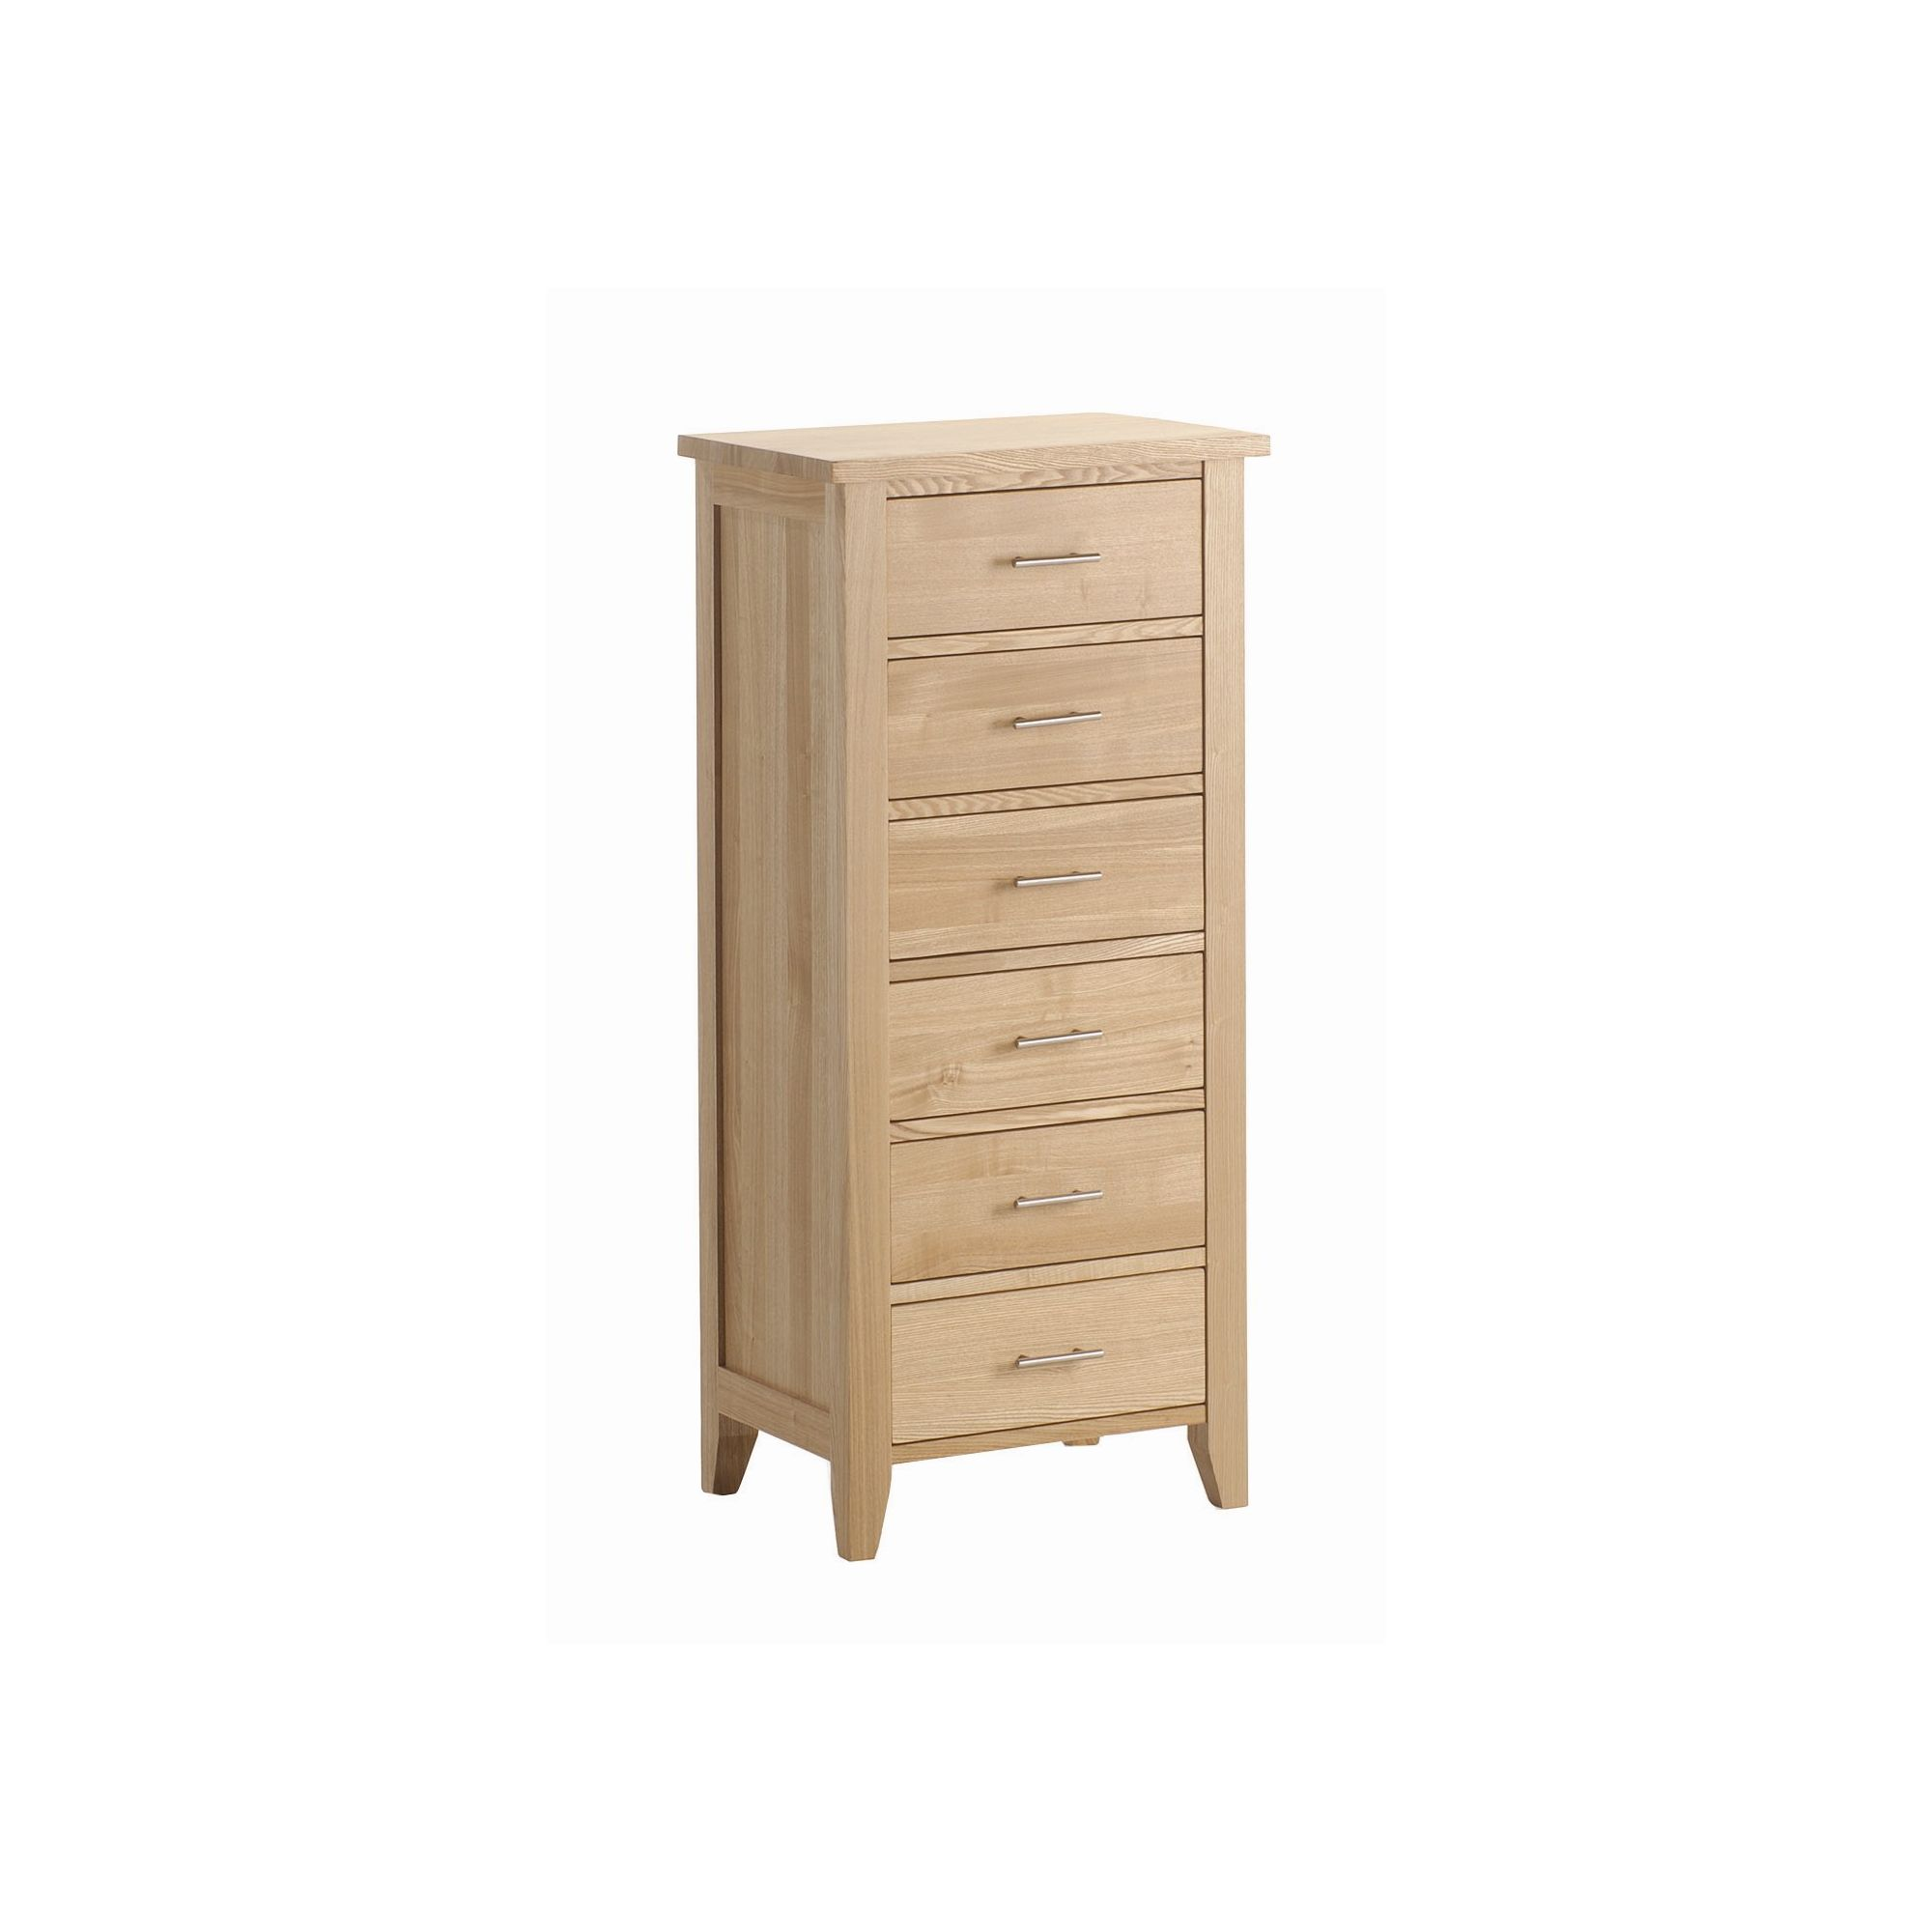 Kelburn Furniture Carlton Ash 6 Drawer Wellington at Tesco Direct